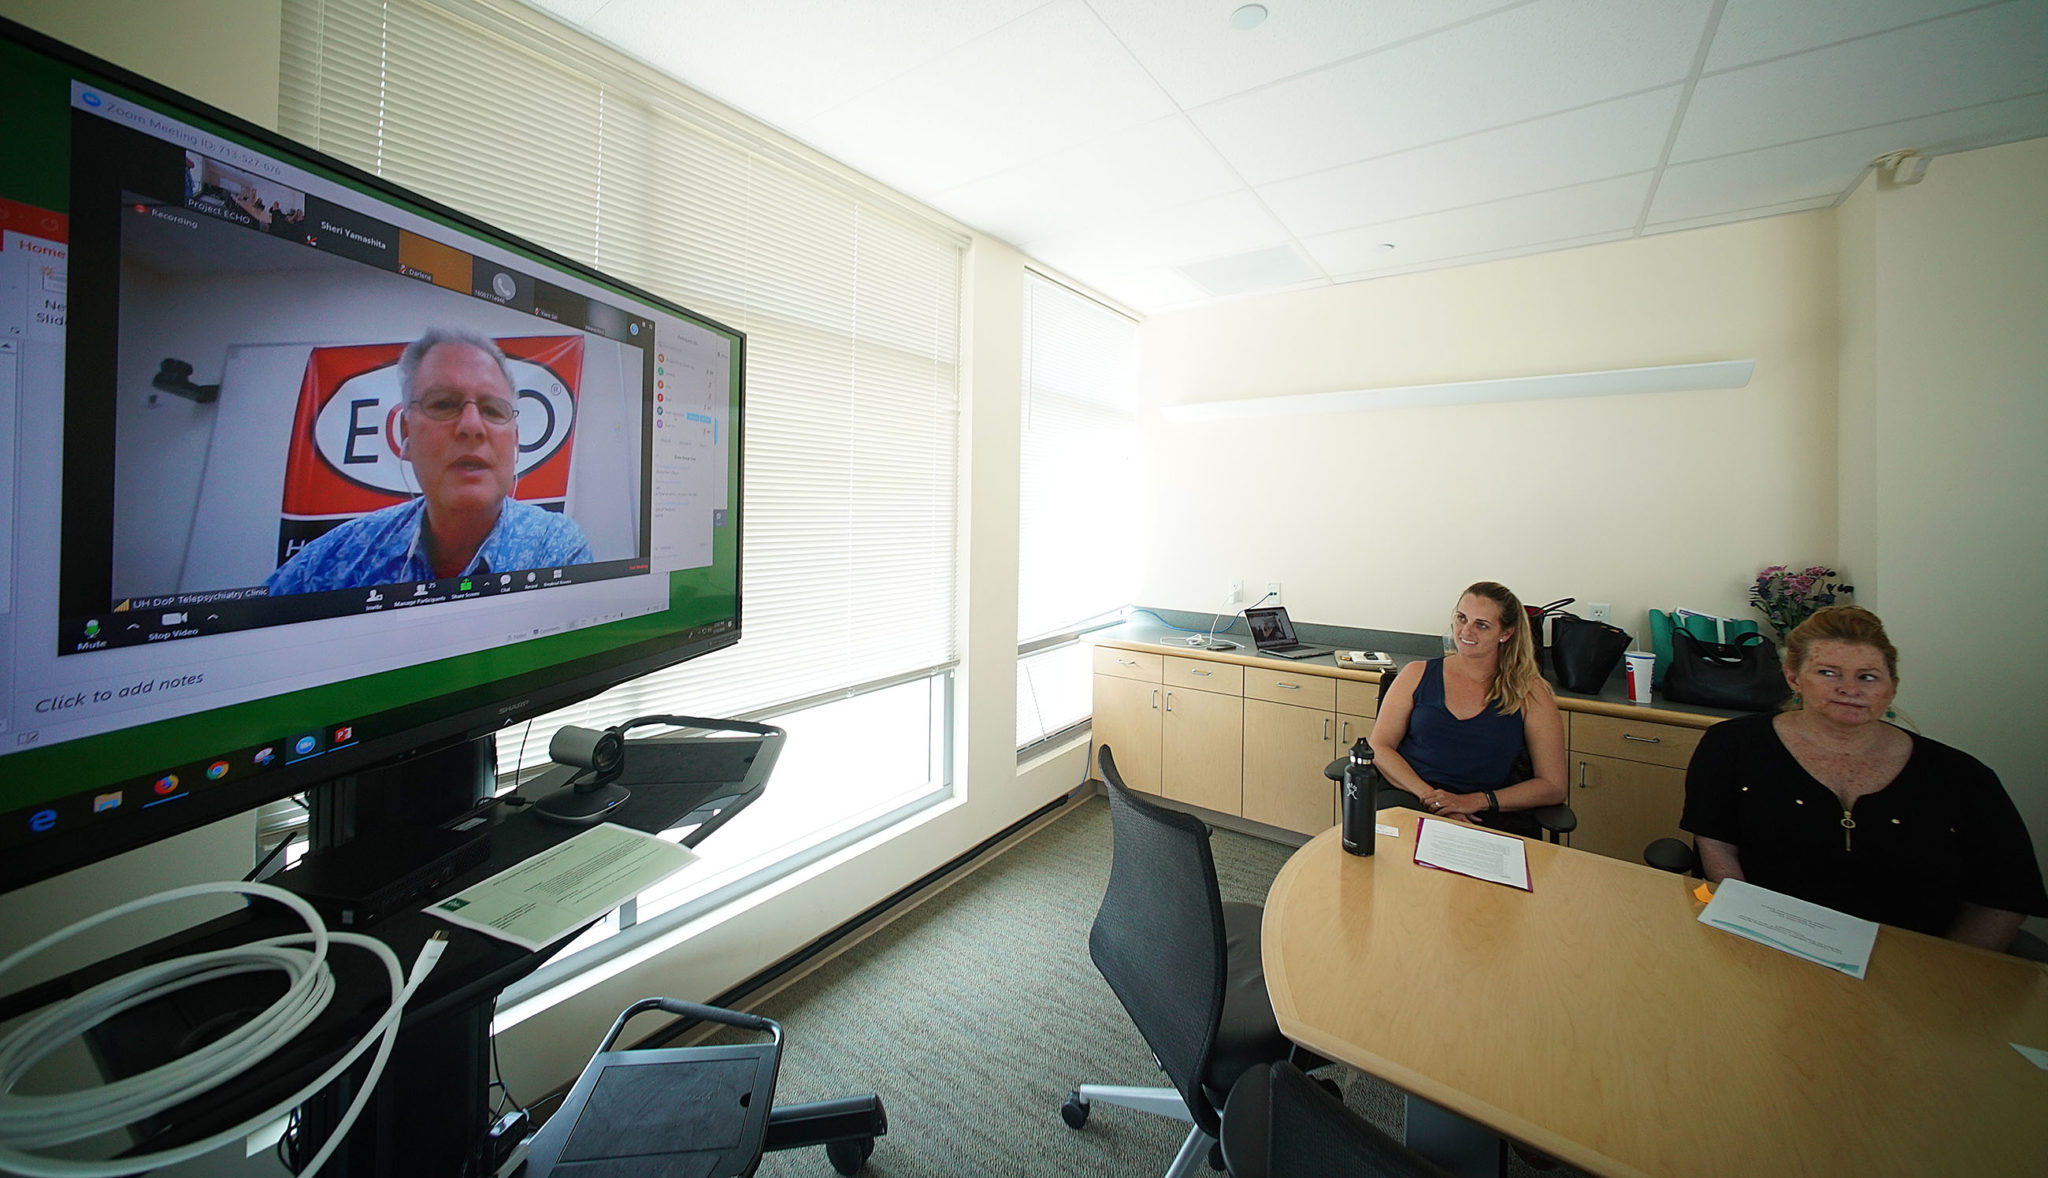 Left, Lindsey Kaumeheiwa, Dept of Health Expert Project Coordinator and right, Hawaii Substance Abuse Coalition, Expert Referral Coordinator Bebe Bainum speak to a group of folks on the screen at left at UH Medical School located in Kakaako.